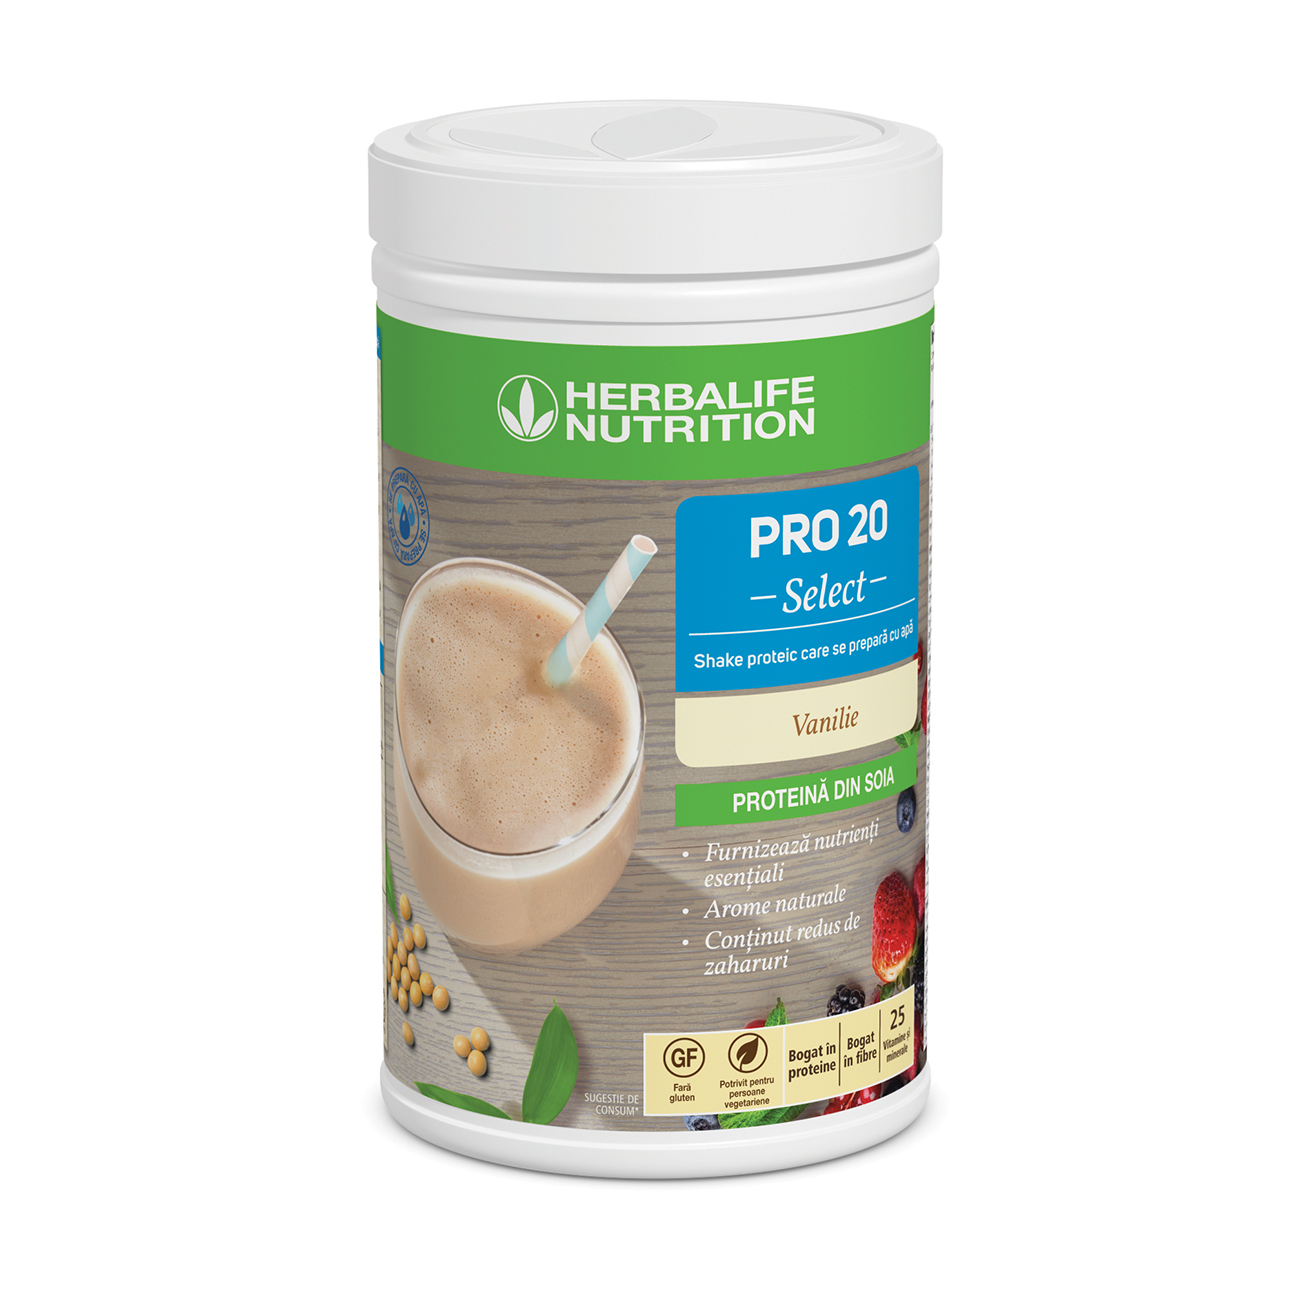 PRO 20 Select Shake proteic Vanilie product shot